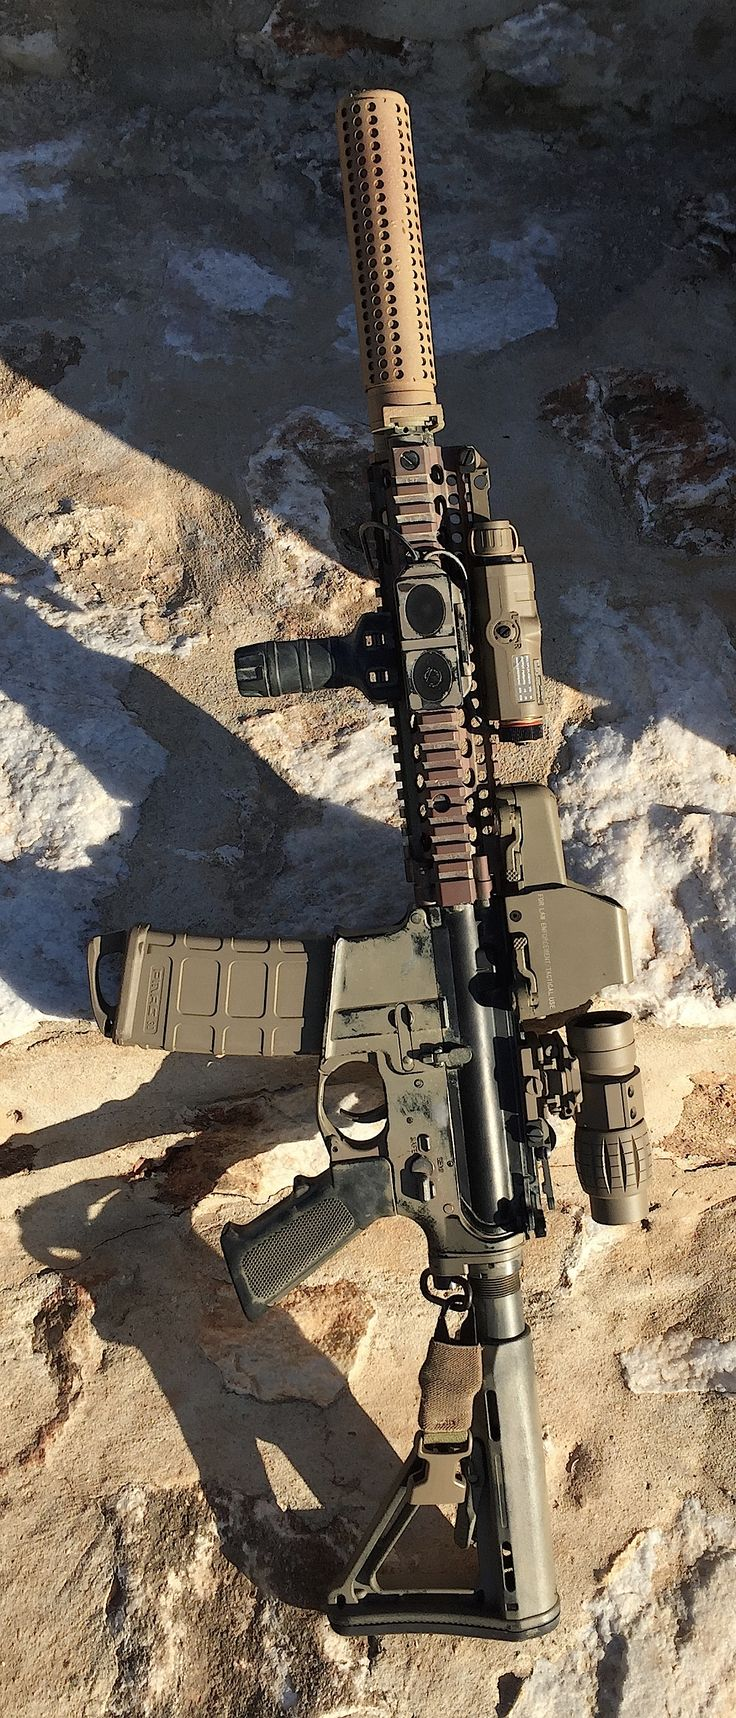 M4 CQBR Block II (MK18). #Suppressors make shooting quieter and more enjoyable. And, in spite of the $200 ATF extortion fee, they are legal. http://beardedhermit.com/three-reasons-suppressors-should-be-legal/